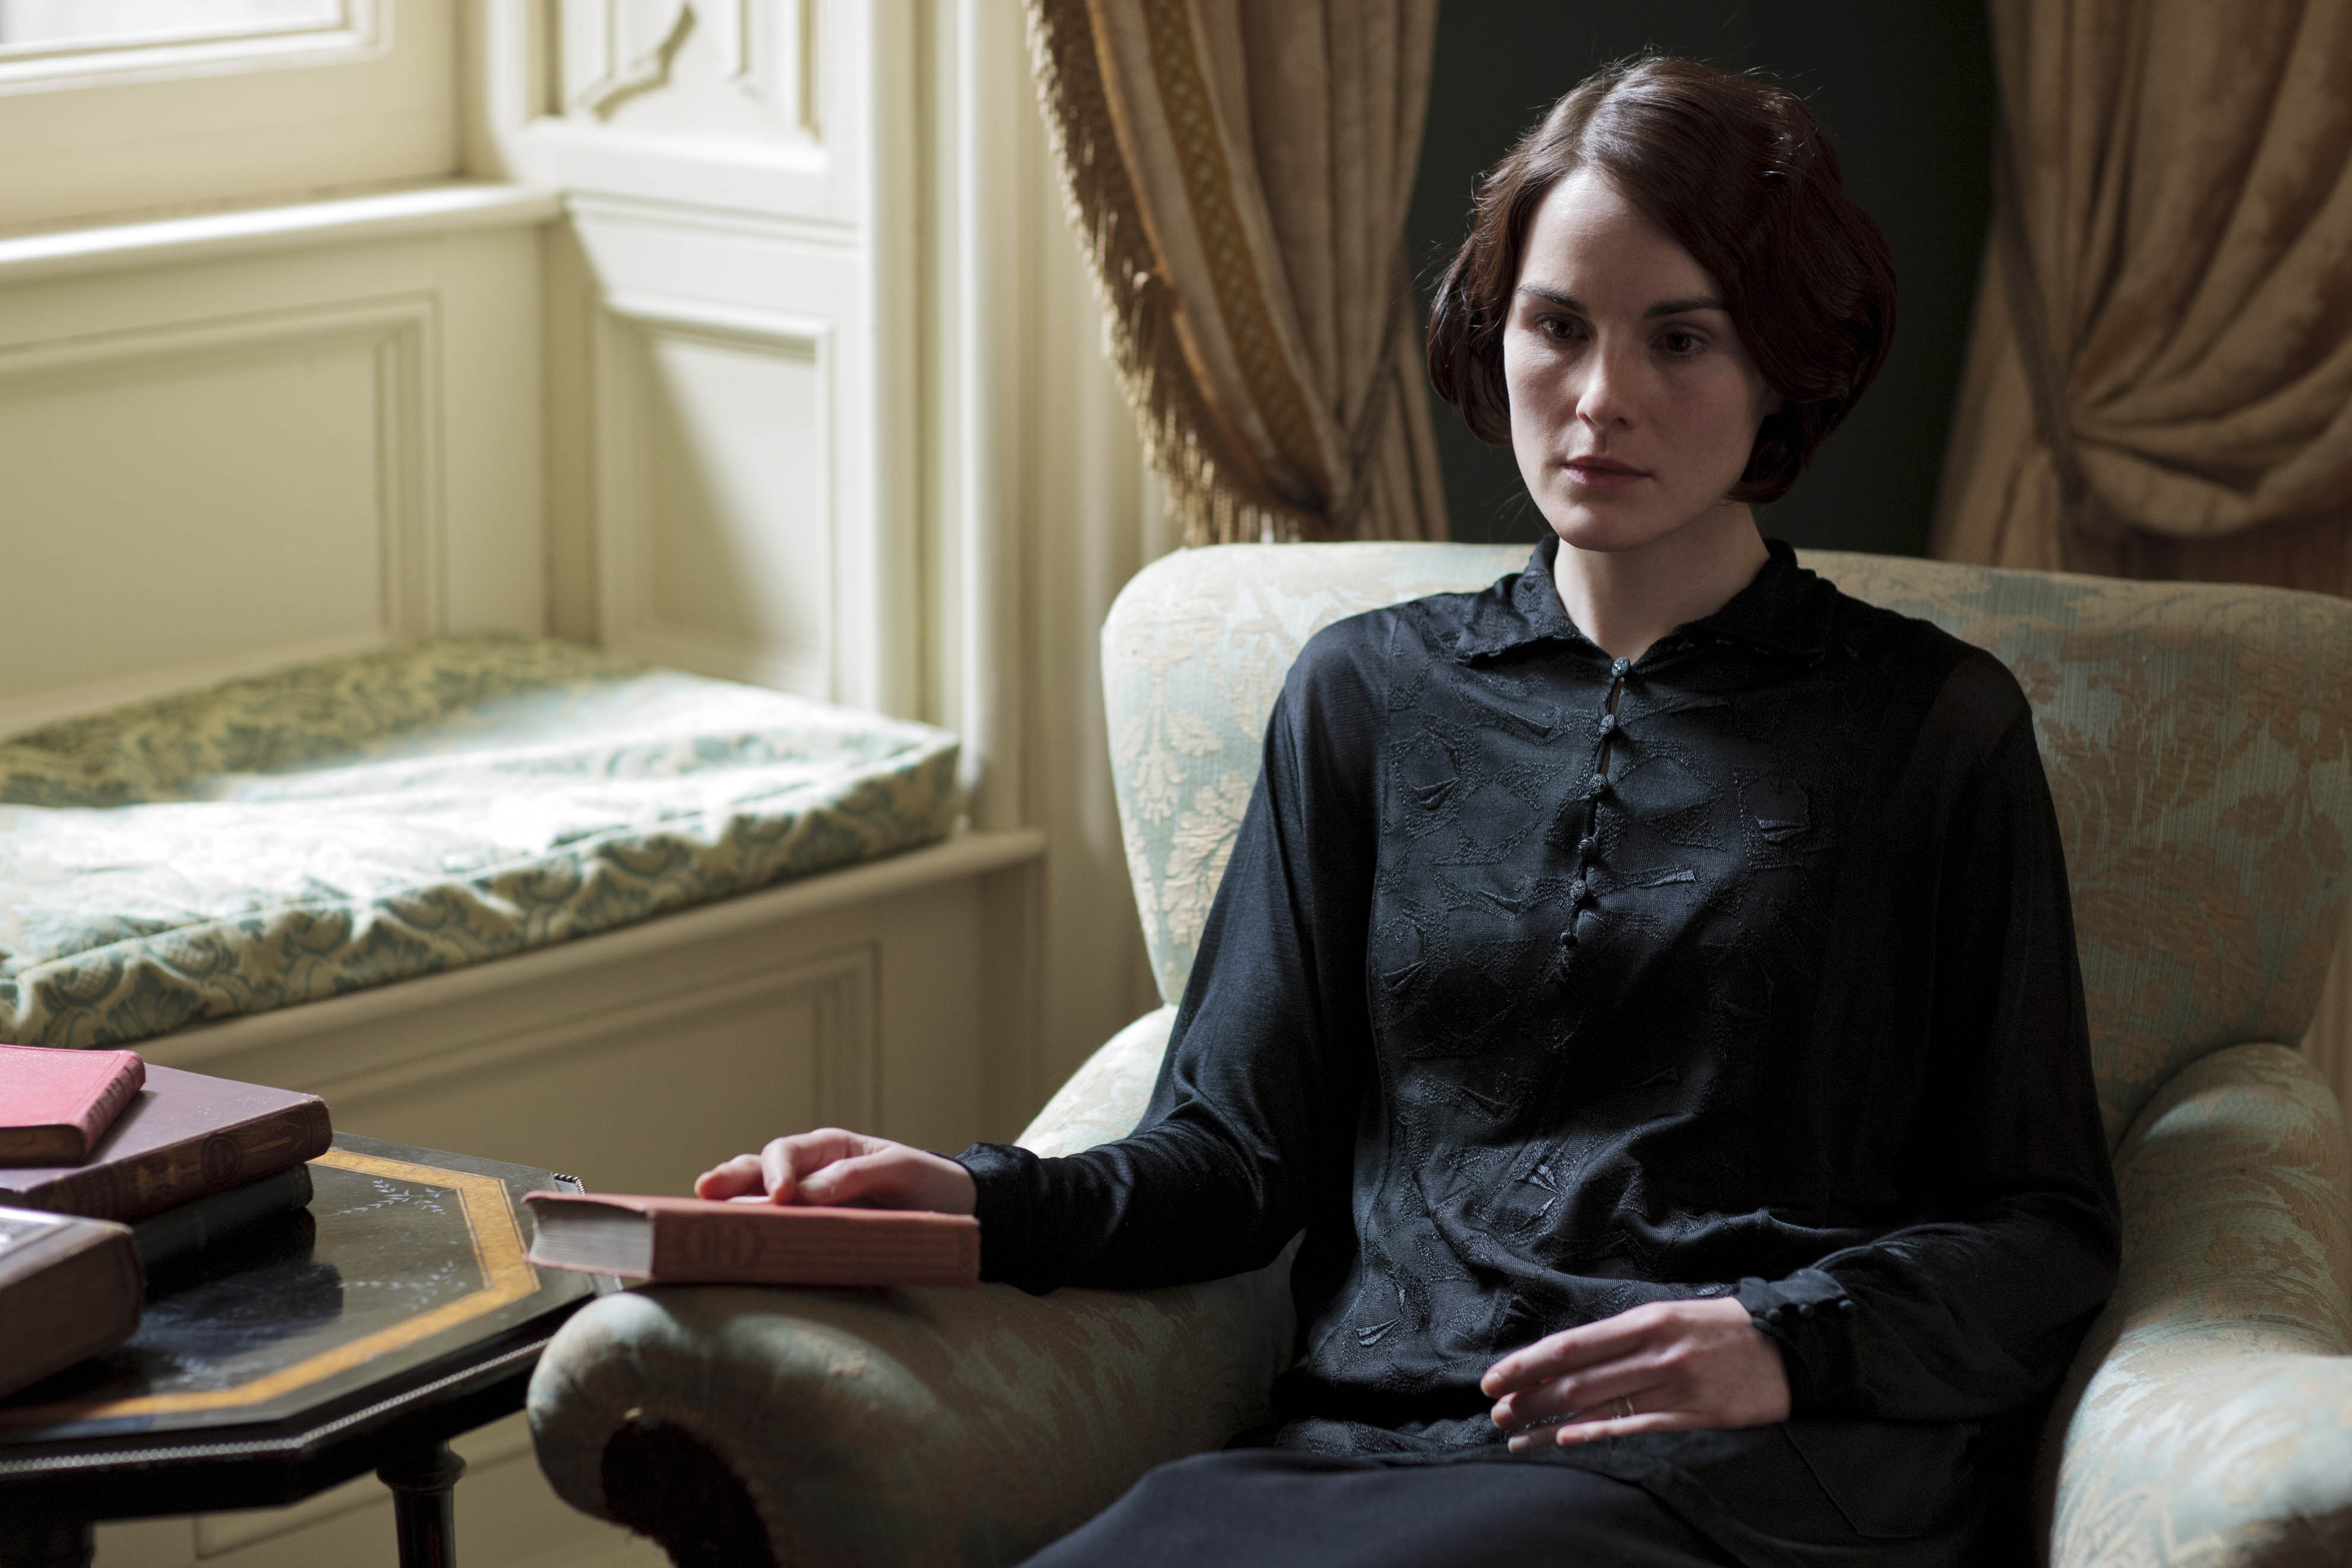 Downton Abbey series 4, episode 1- Lady Mary grieves, Thomas schemes and Daisy makes a mousse